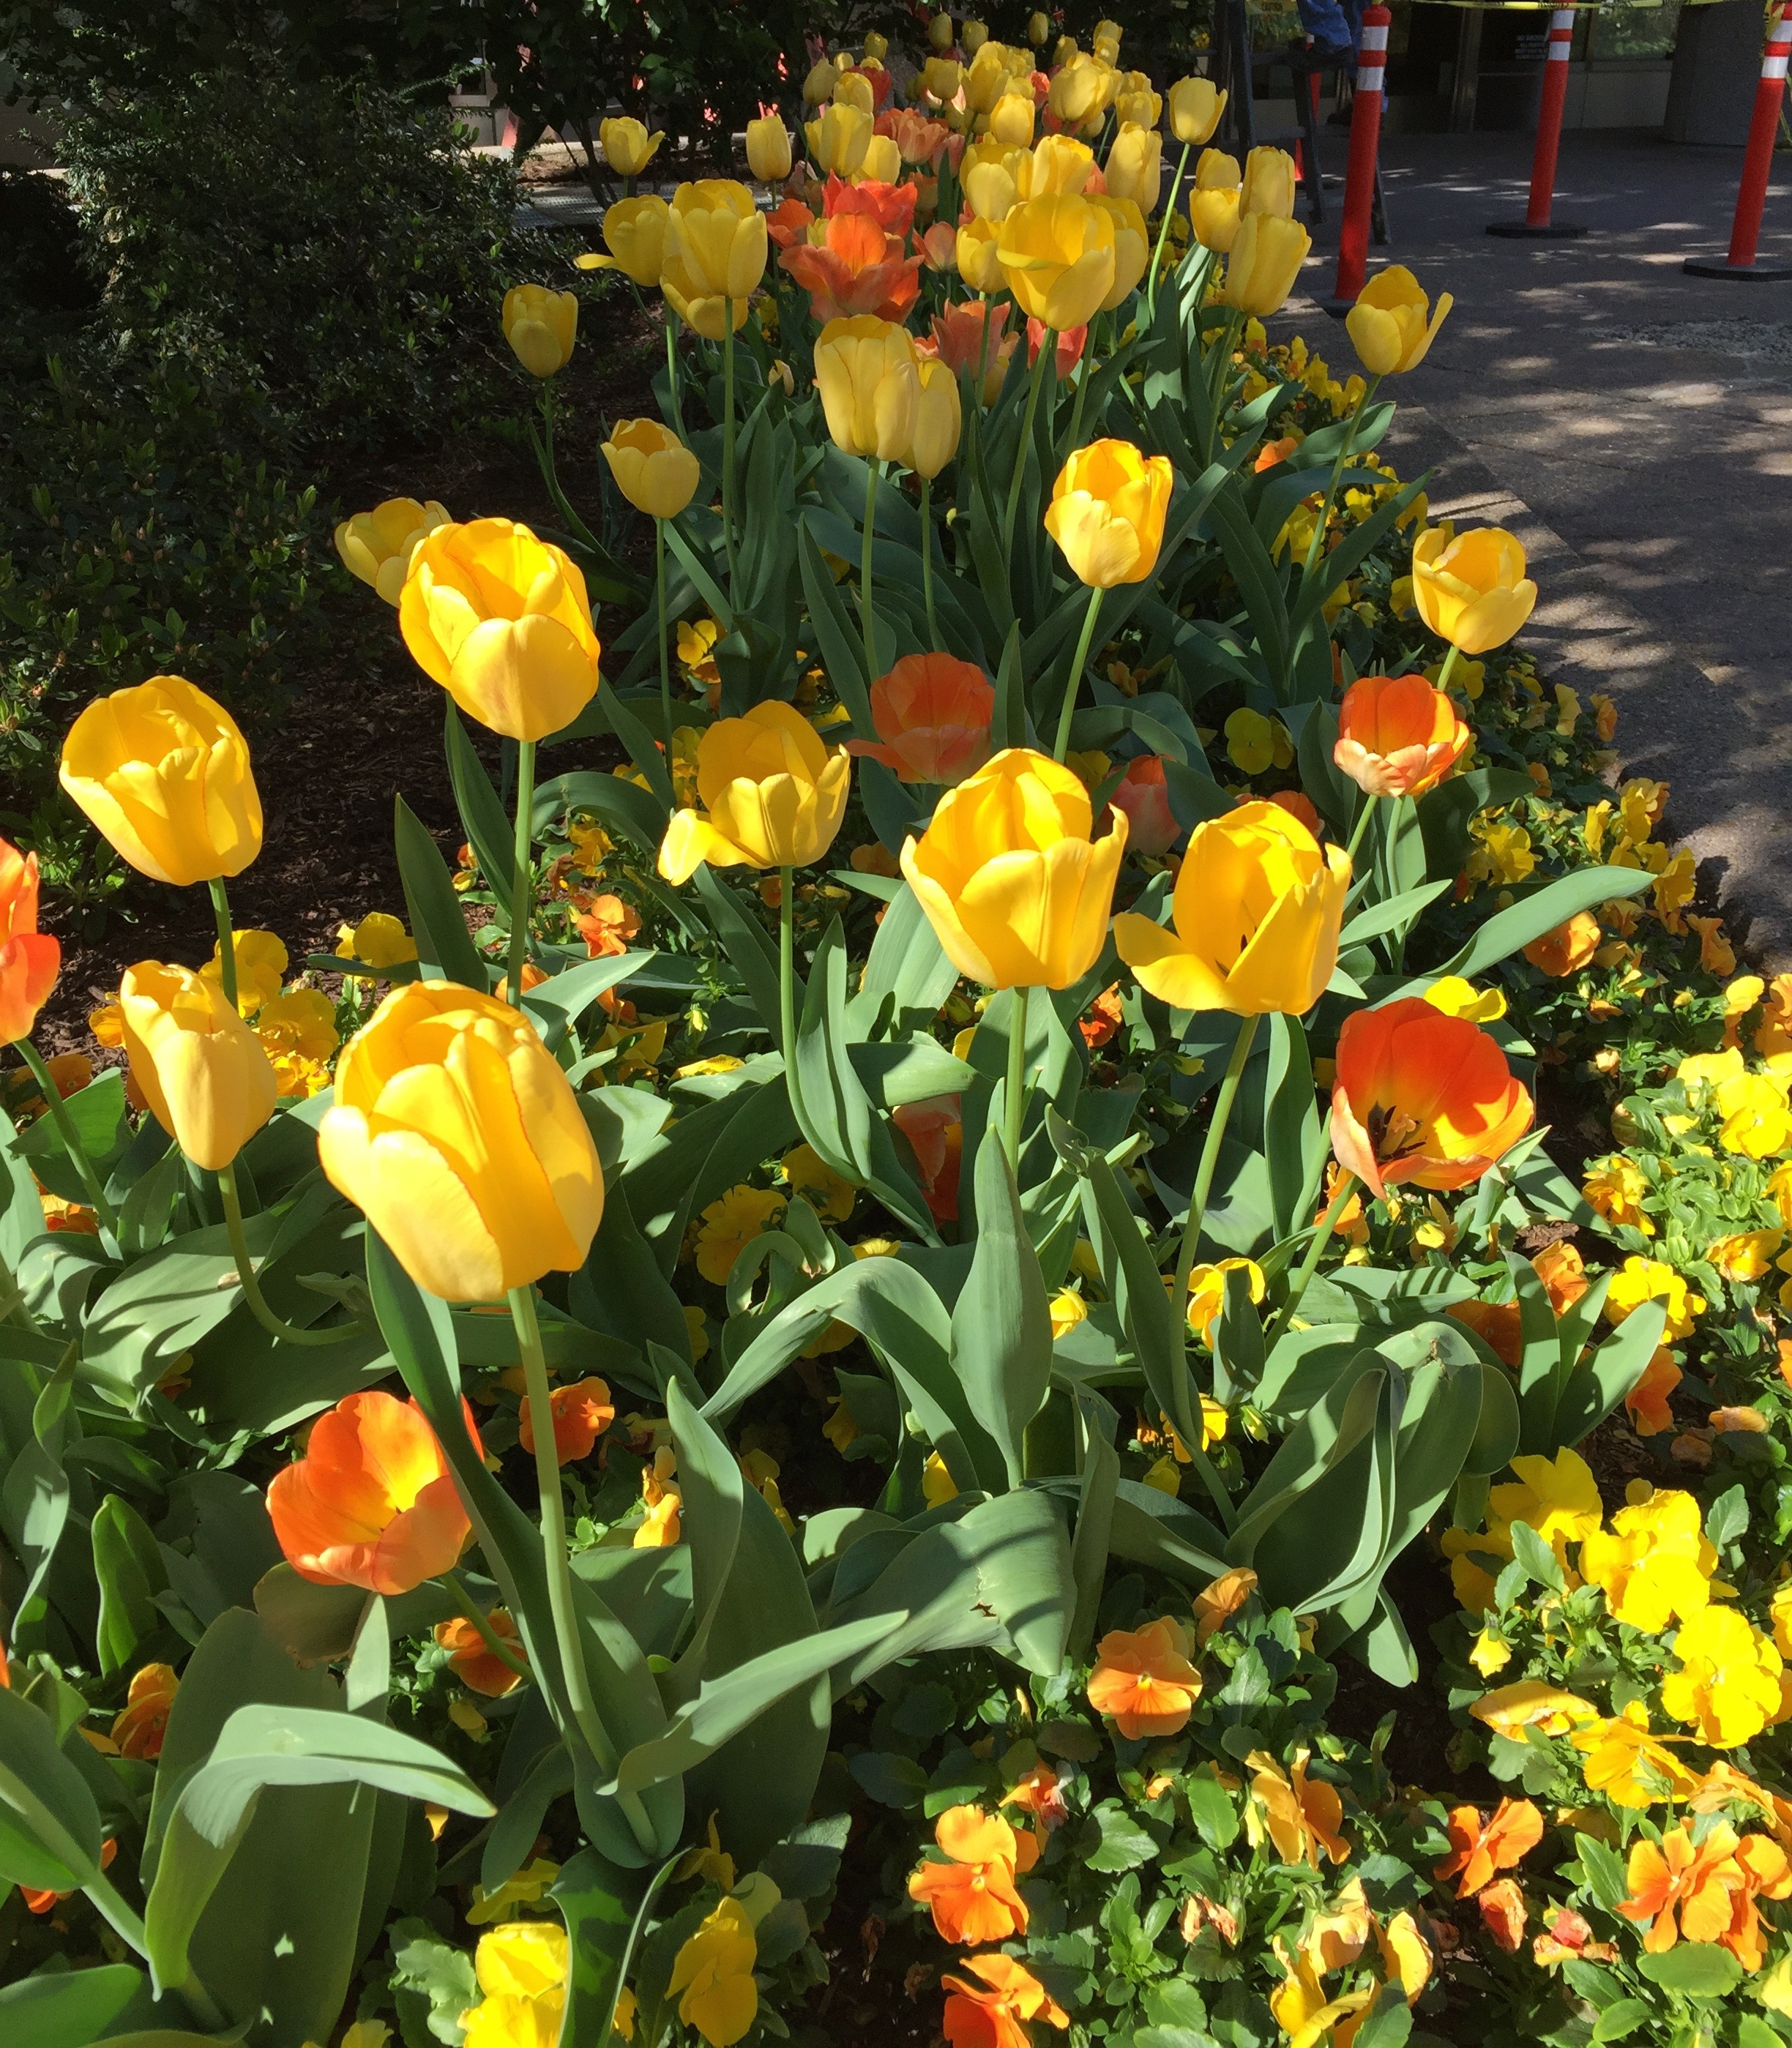 yellowcoraltulips